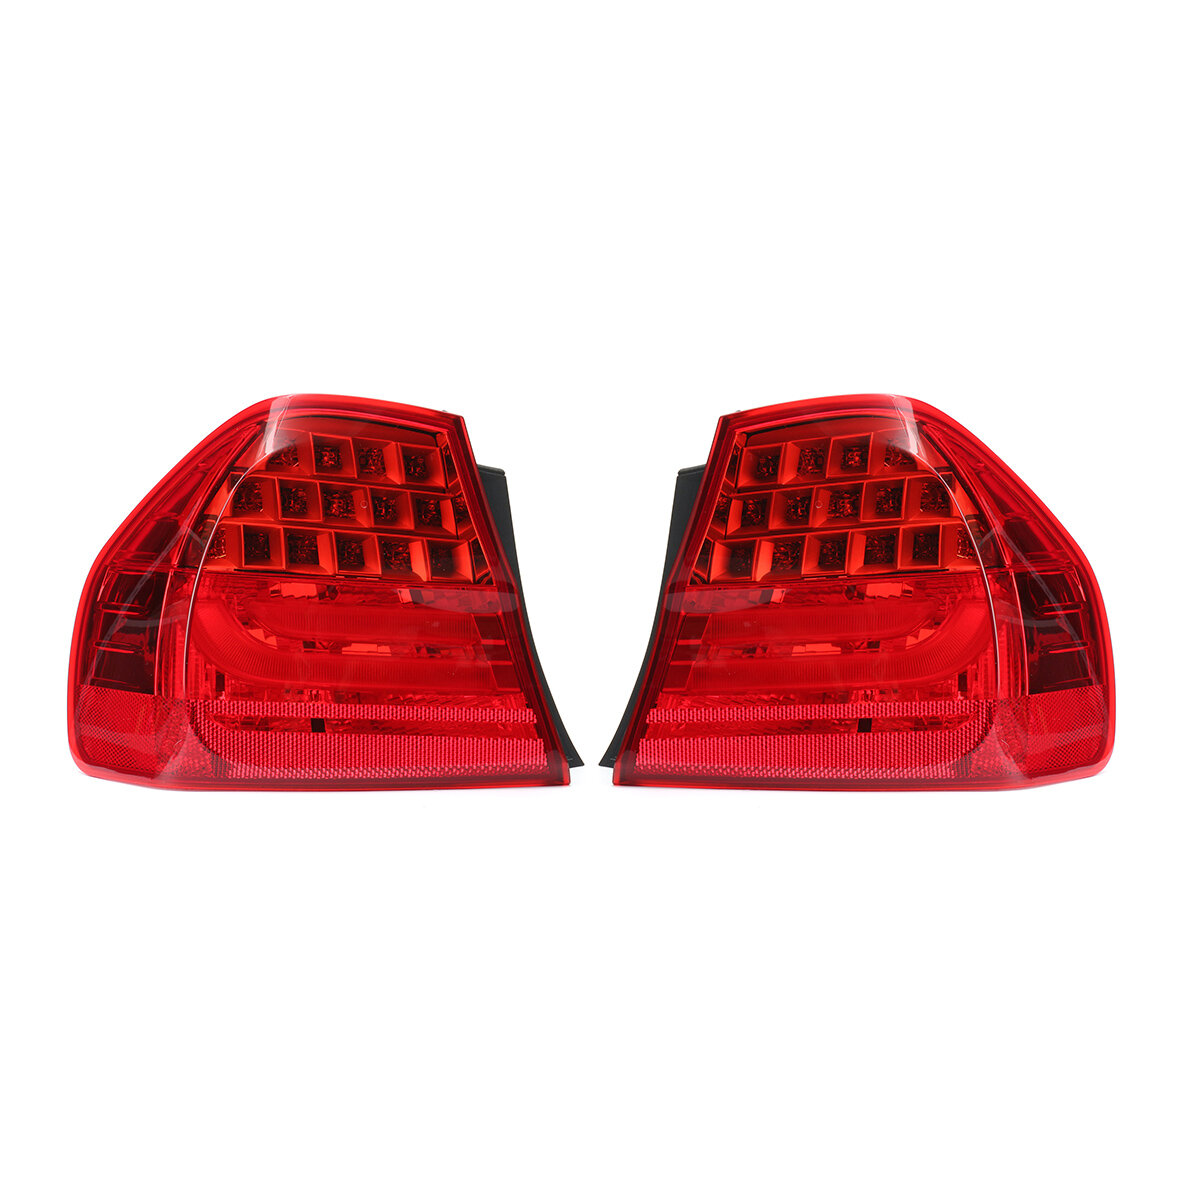 Car LED Rear Tail Lamp Light Assembly Red Outer Left/Right for BMW 3 Series E90 2008-2011